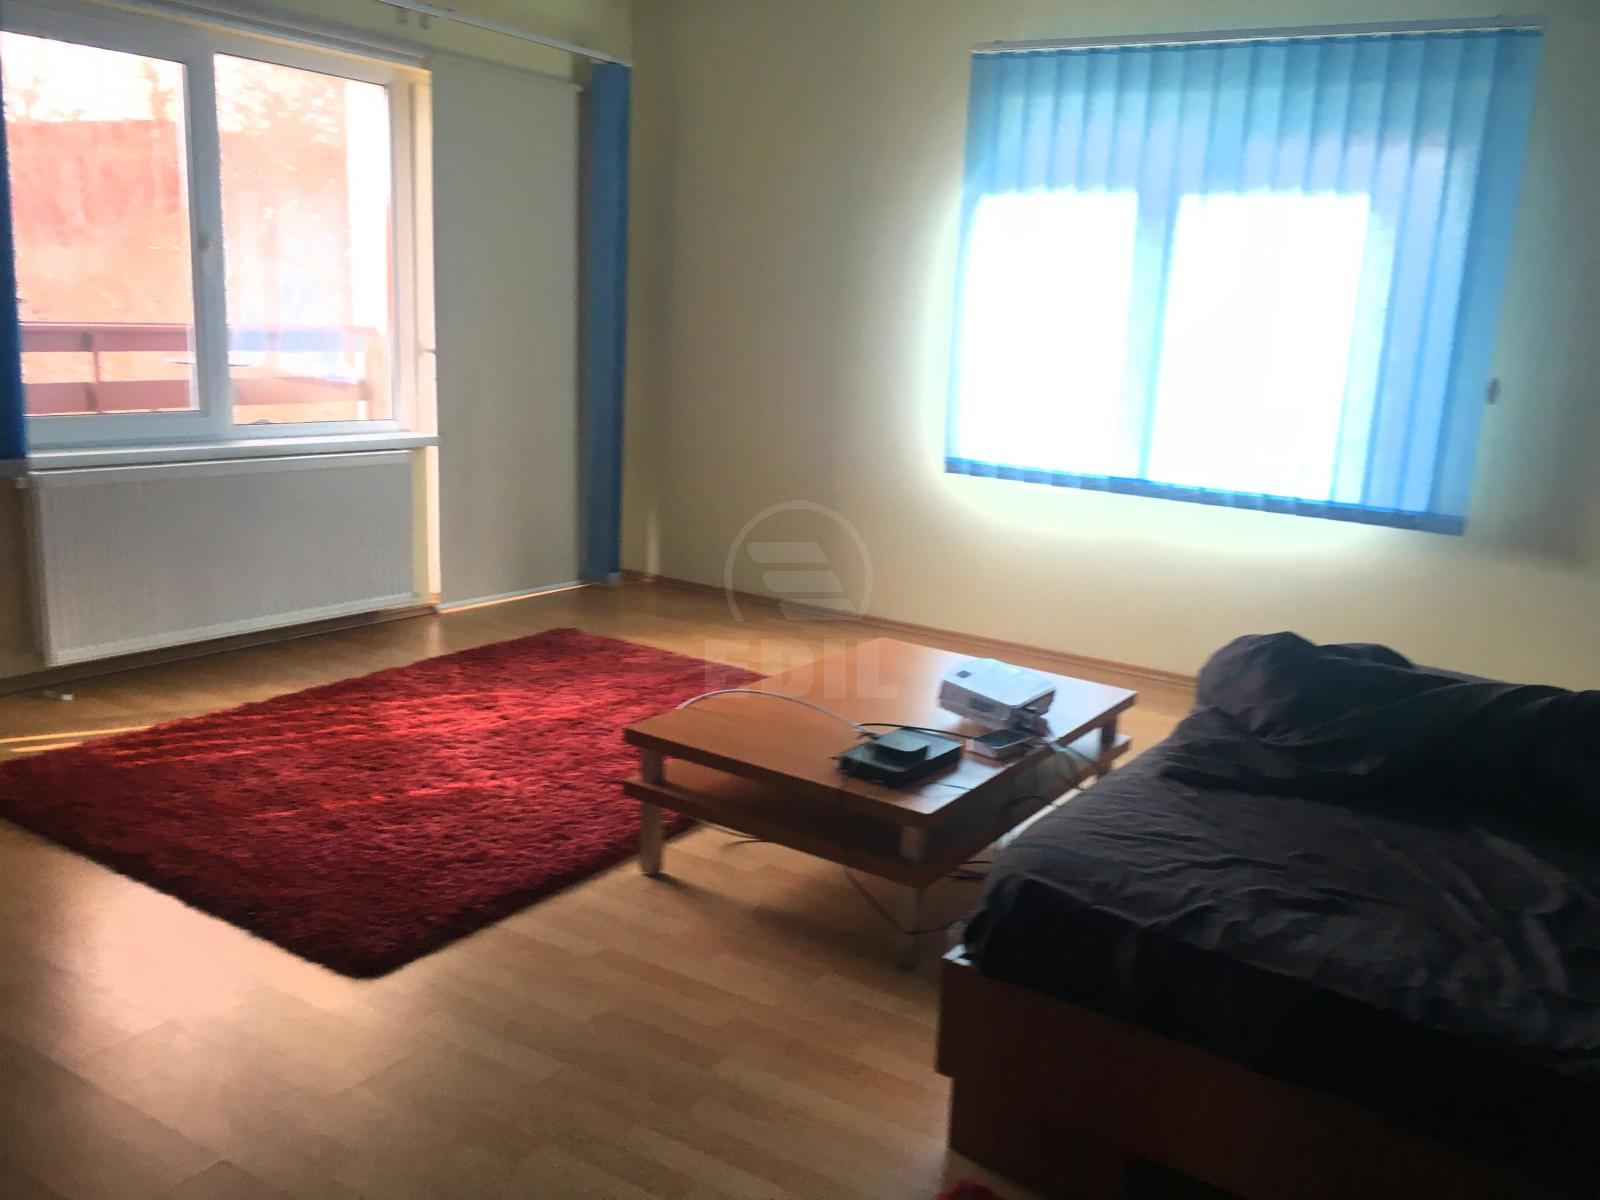 Apartment for sale 3 rooms, APCJ272831-1